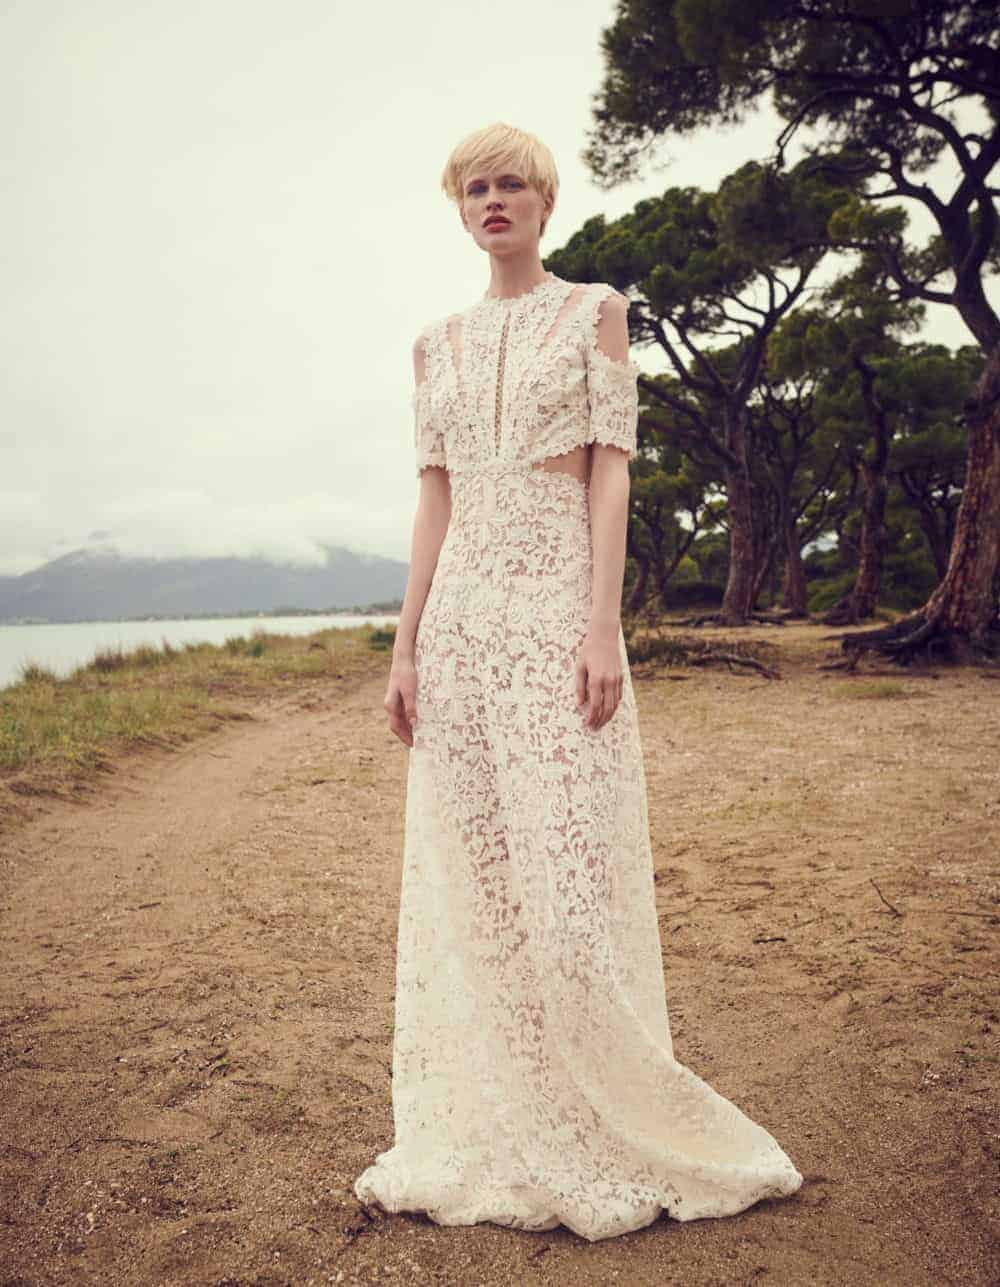 laced wedding dress by Costarellos